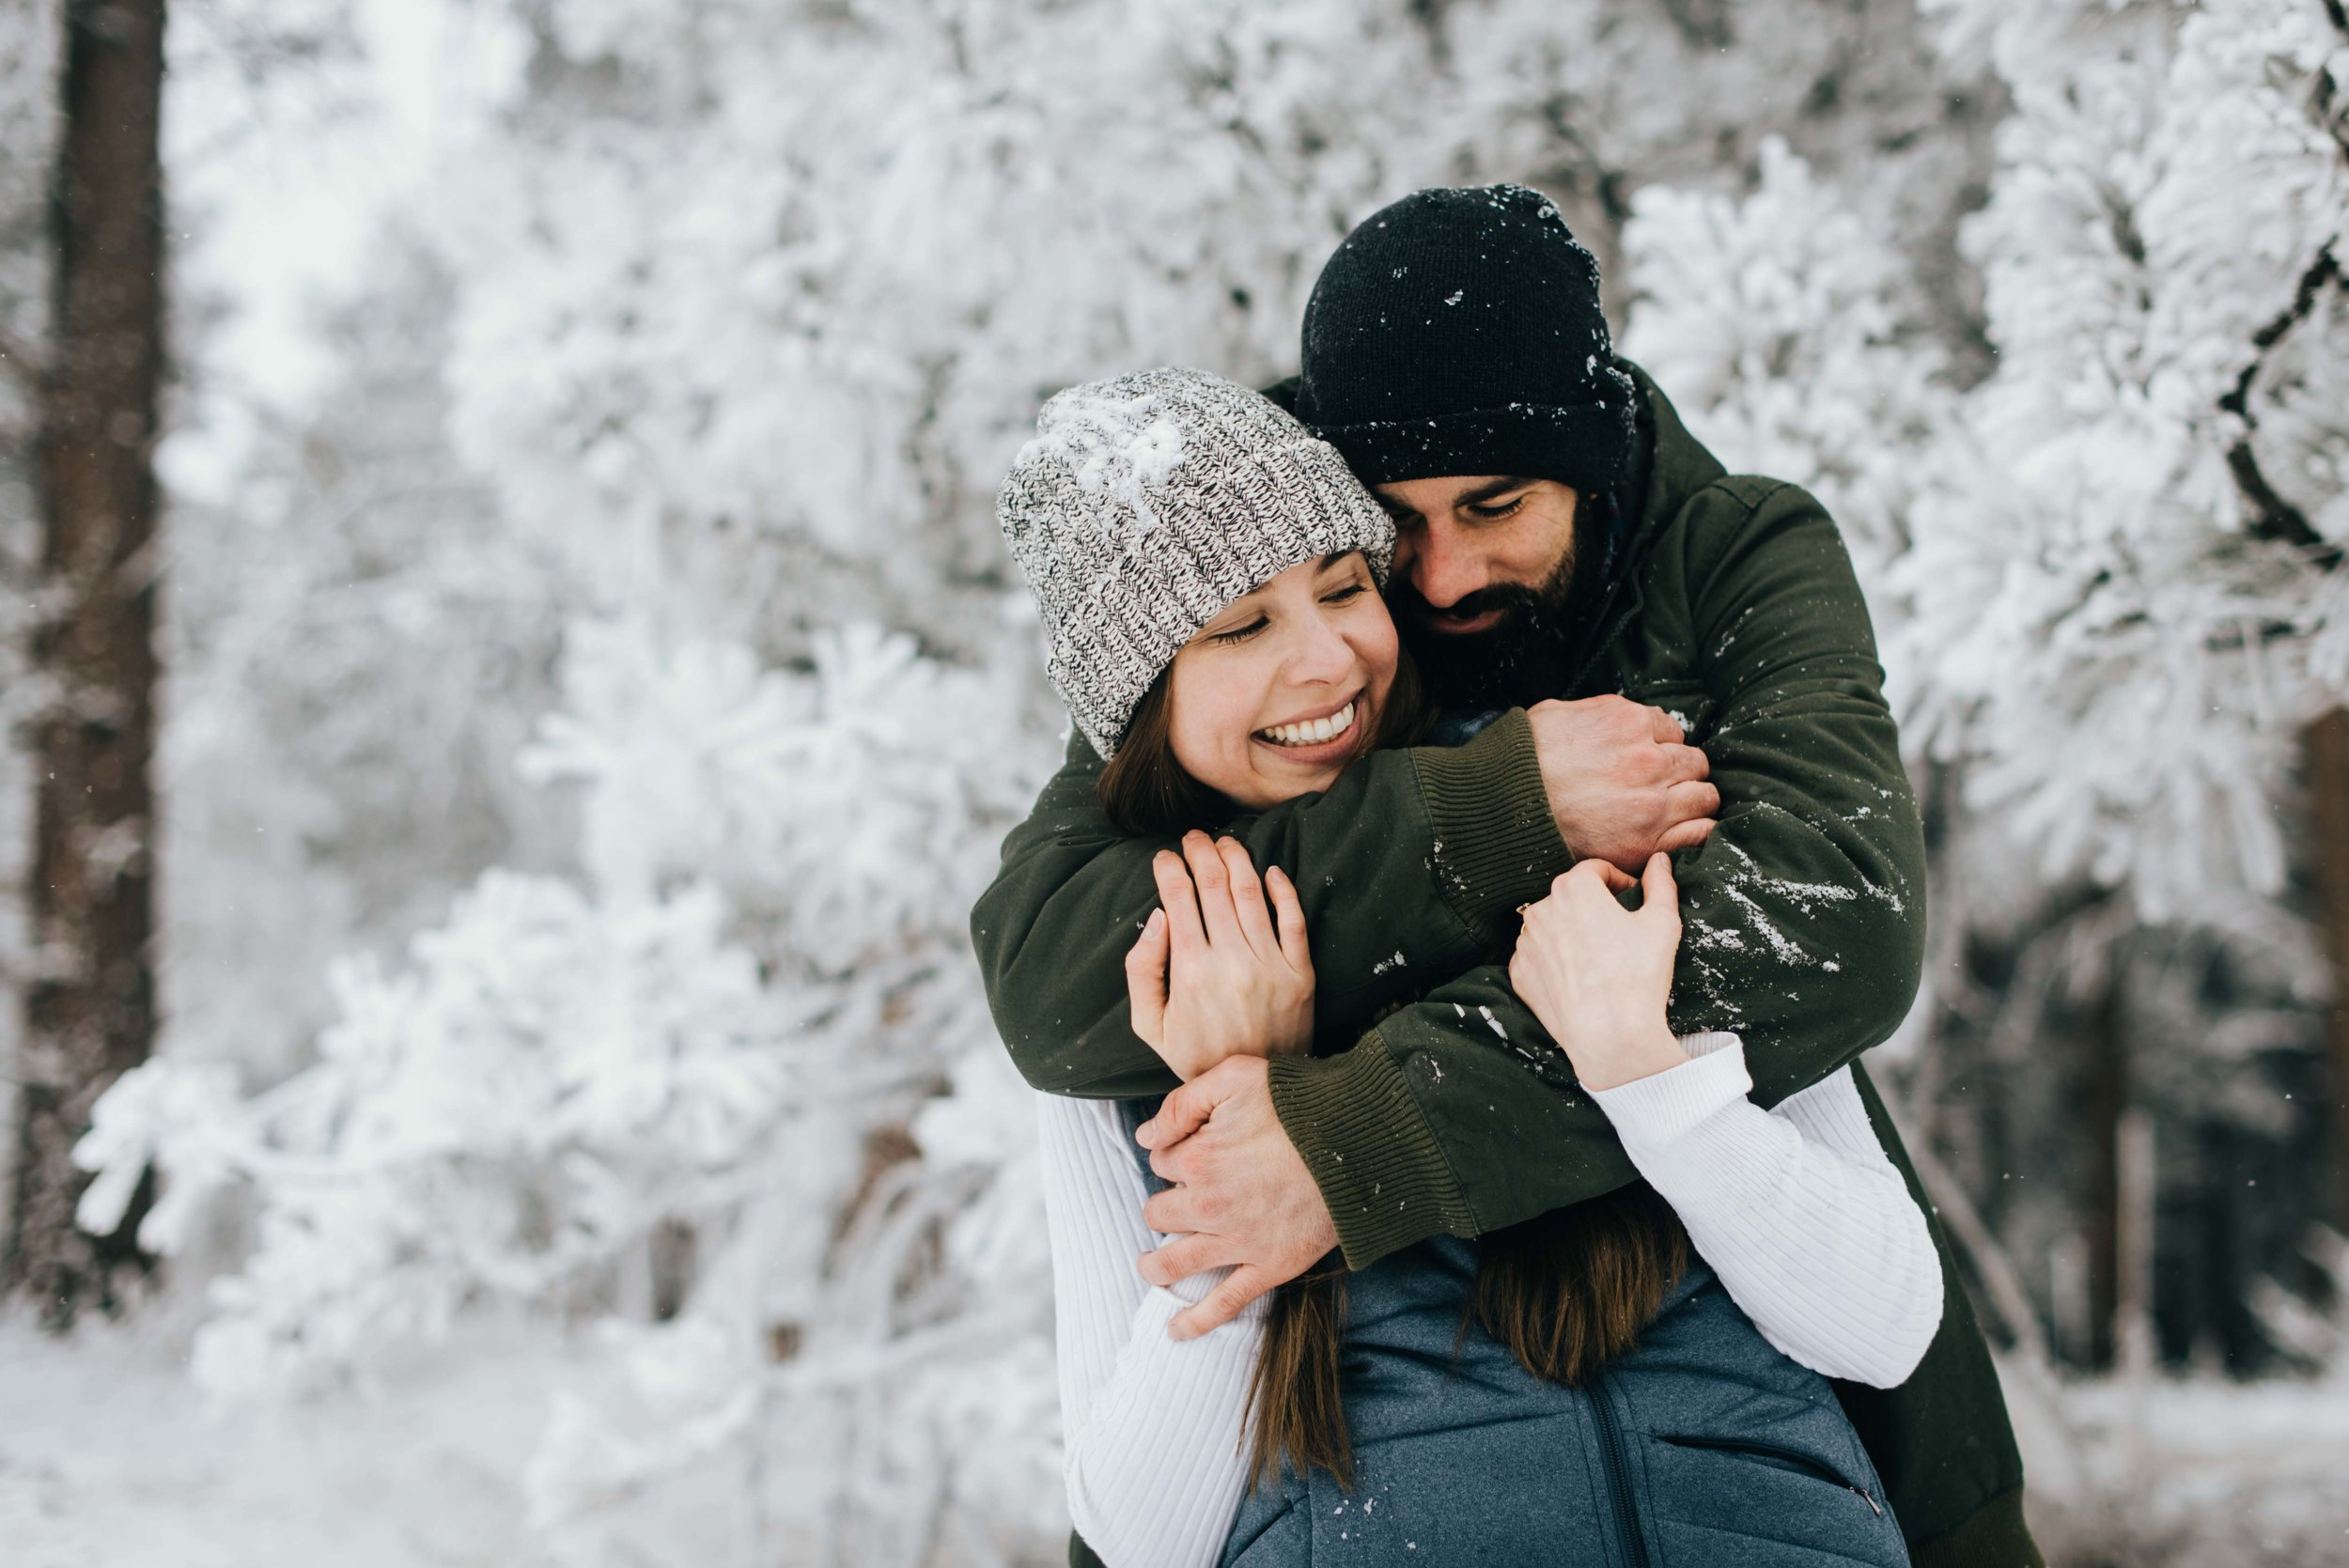 Nik and Tani hugging during their engagement session in Colorado.